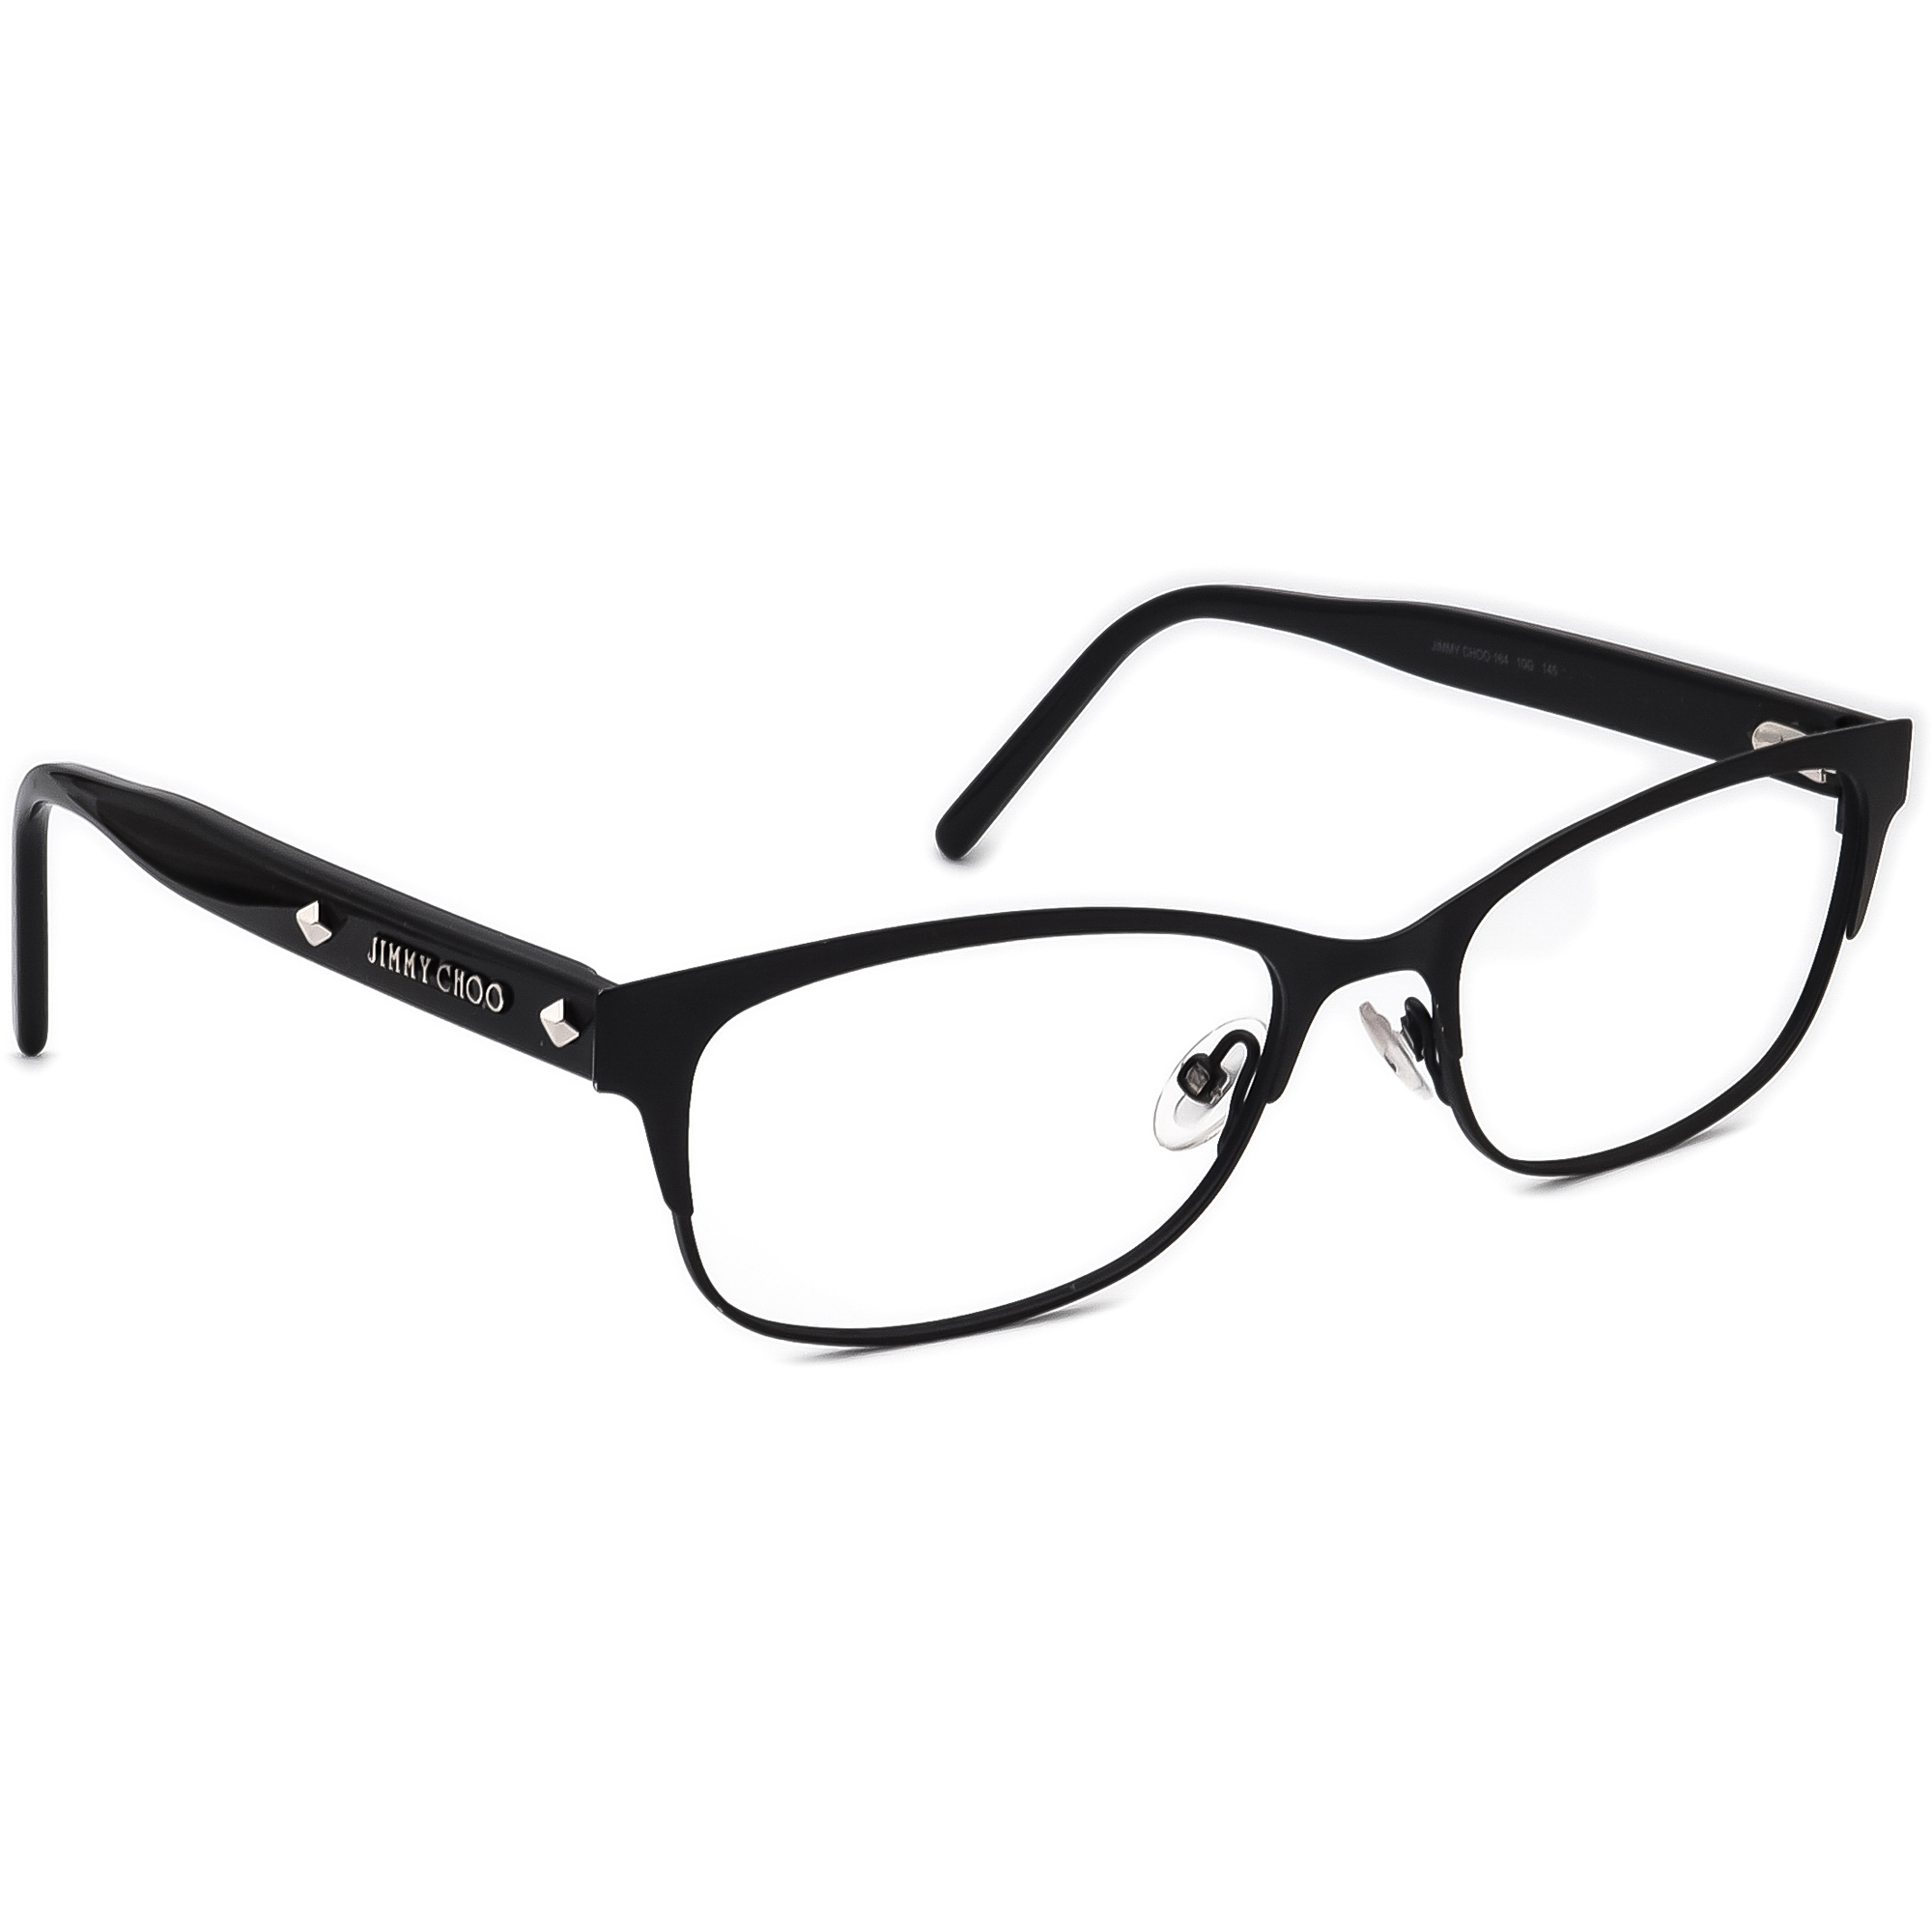 Jimmy Choo 164 10G  Eyeglasses